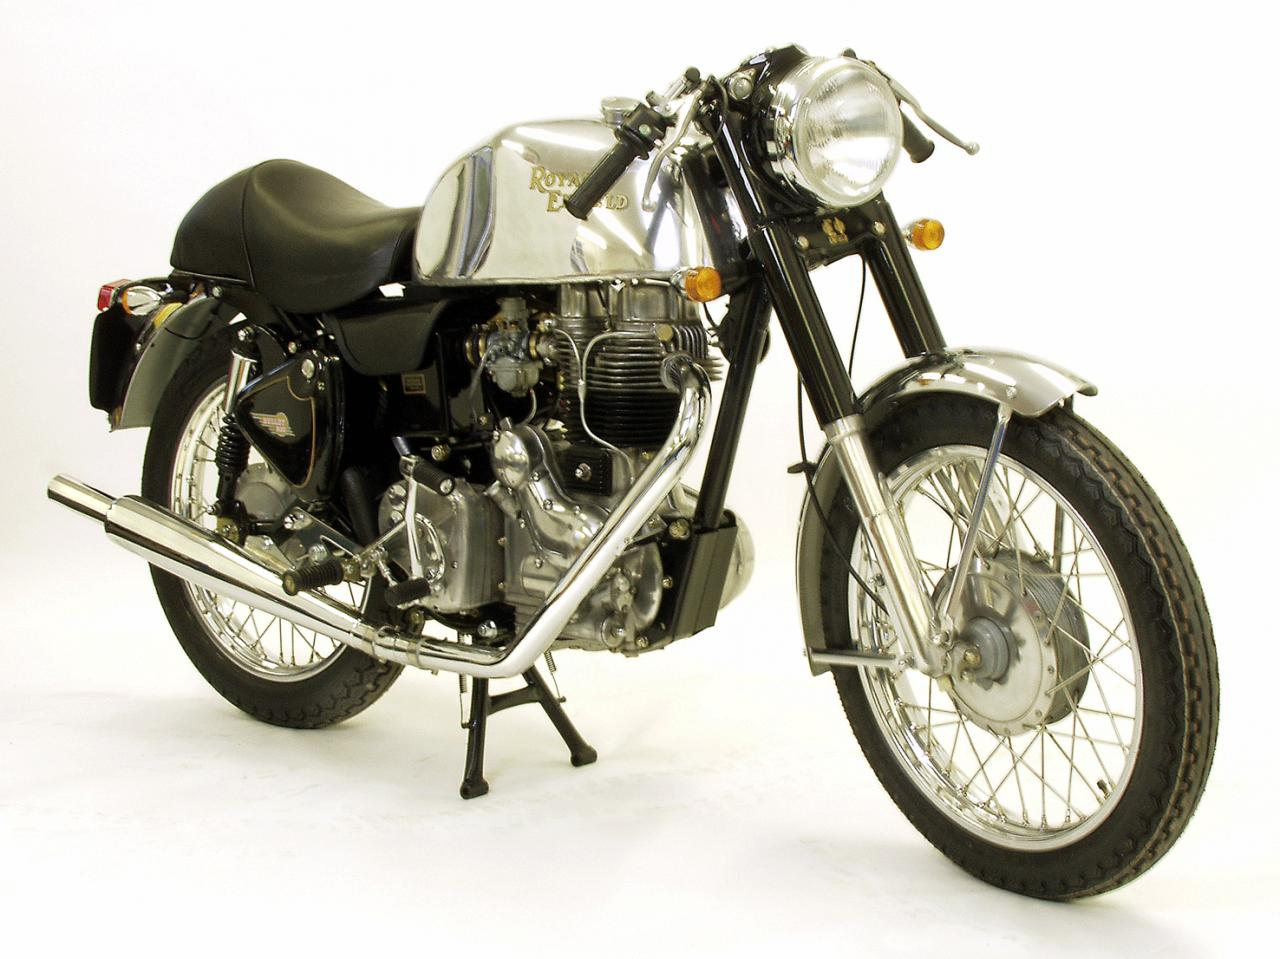 Royal Enfield Bullet 500 S Clubman 2001 images #122991